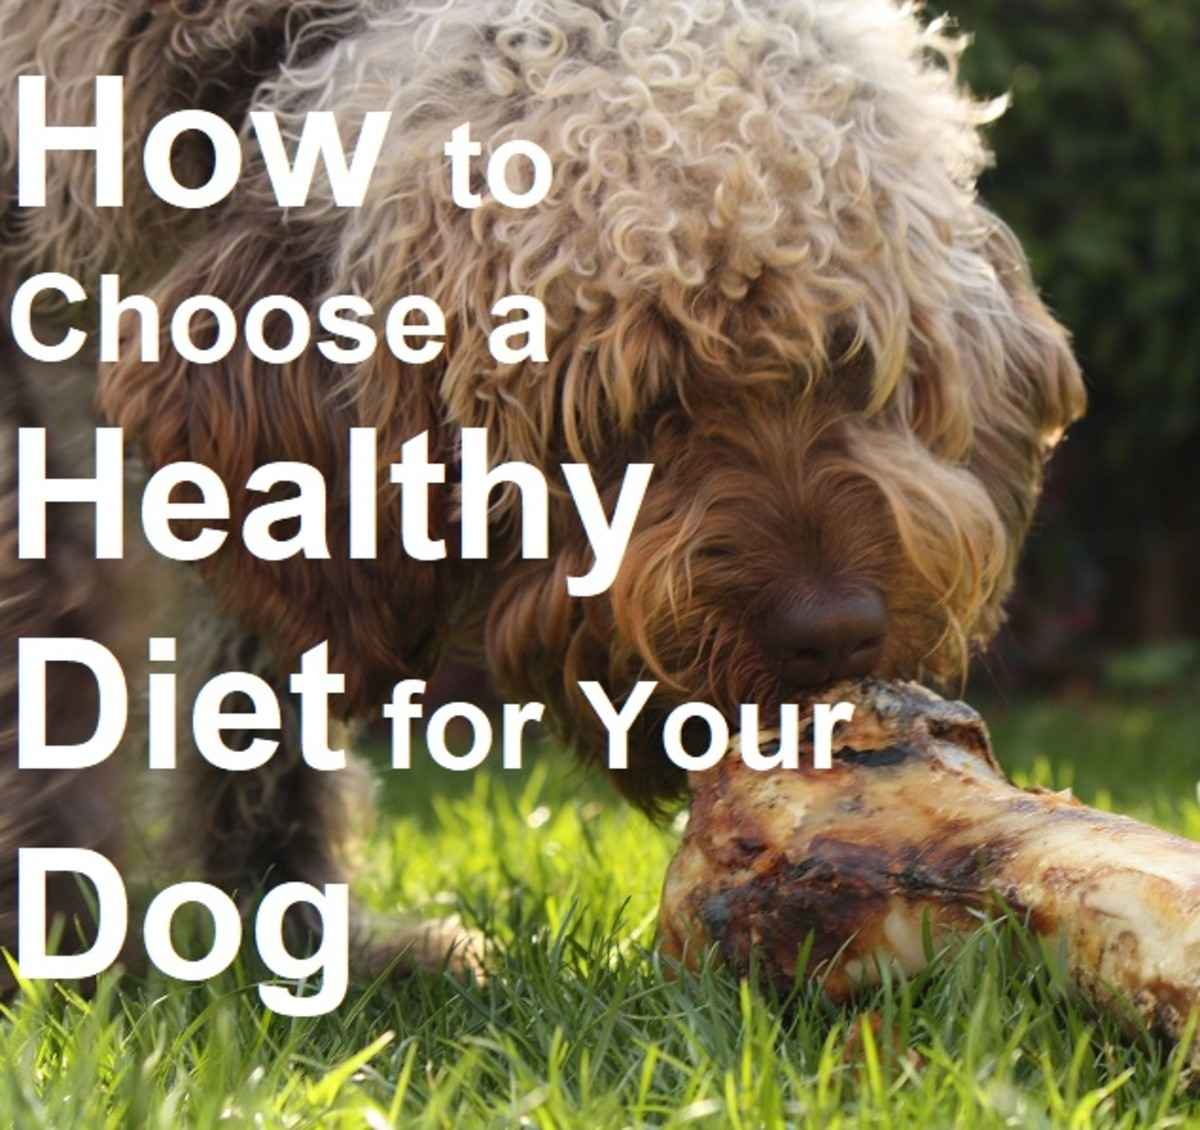 Choosing the right diet for your dog's age, breed, and lifestyle is important for his health and happiness